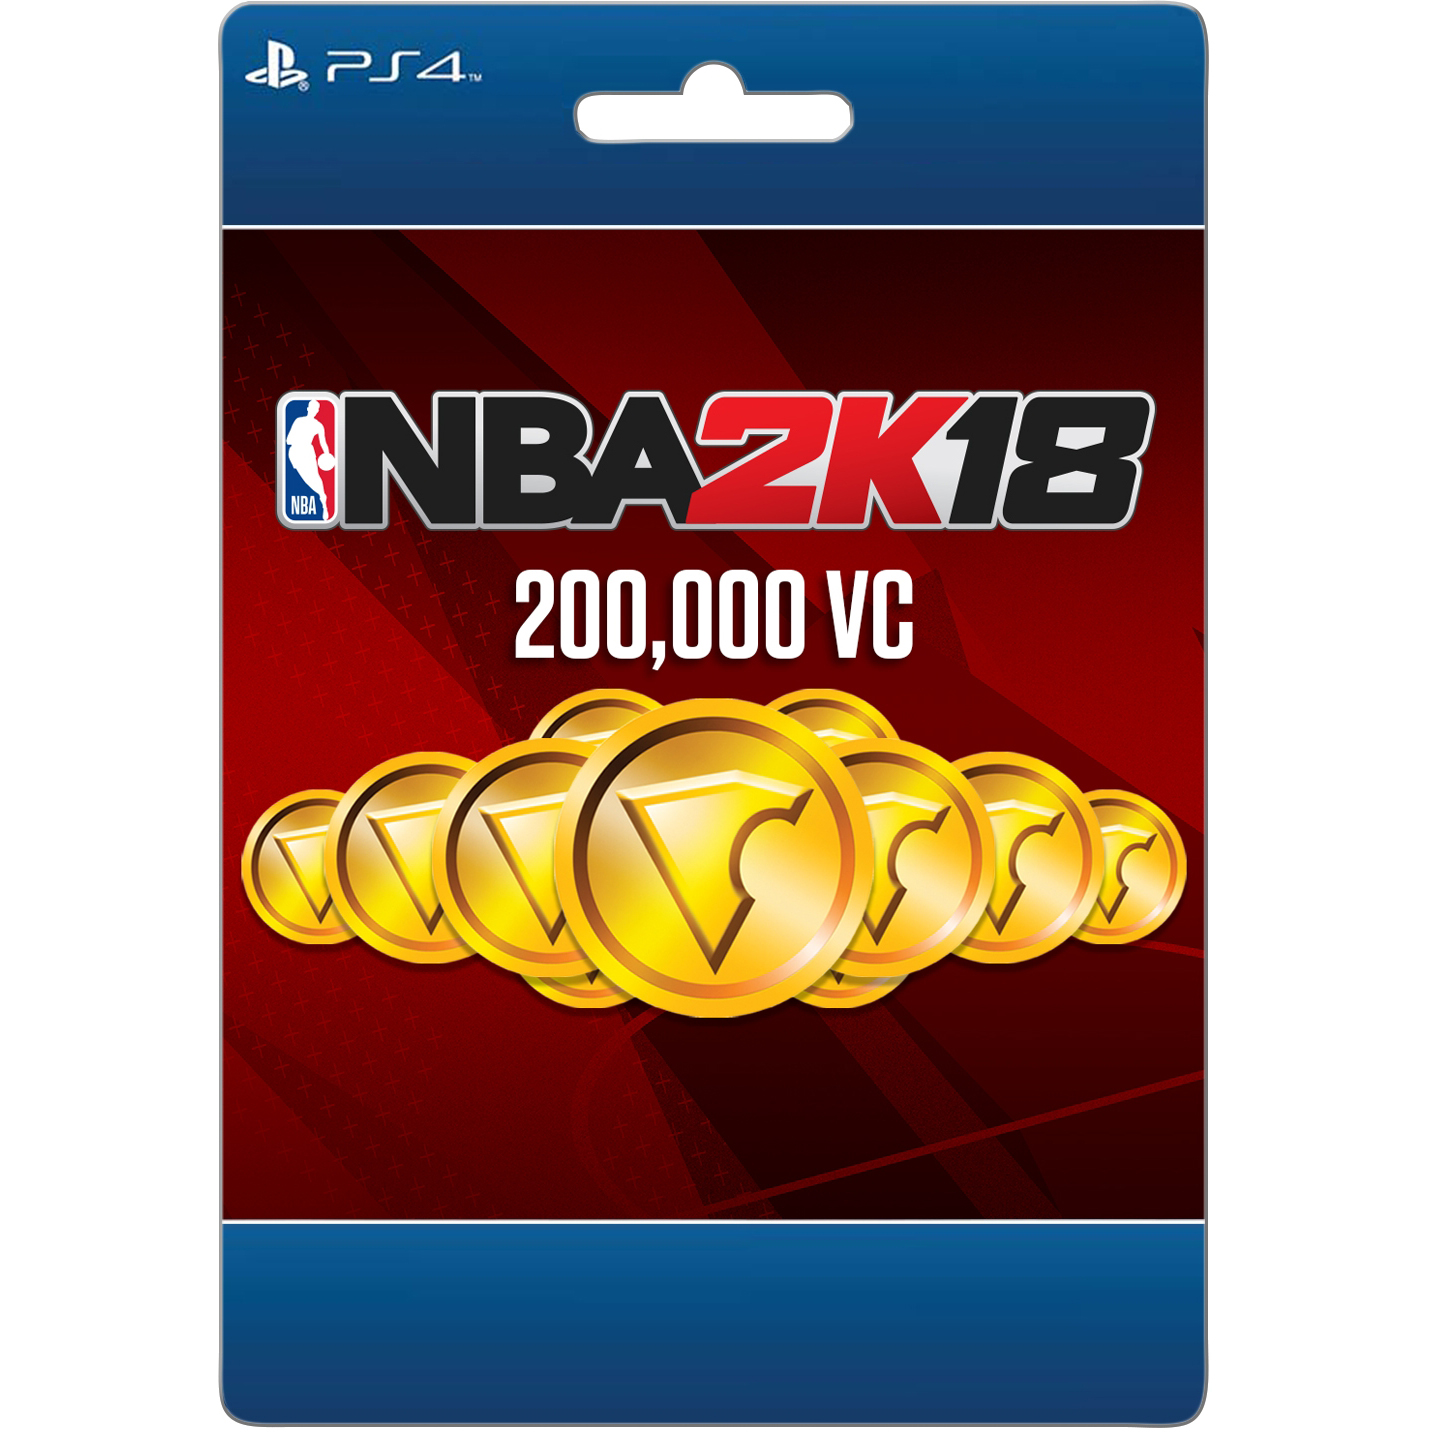 Sony NBA 2K18 200,000 VC (email delivery)